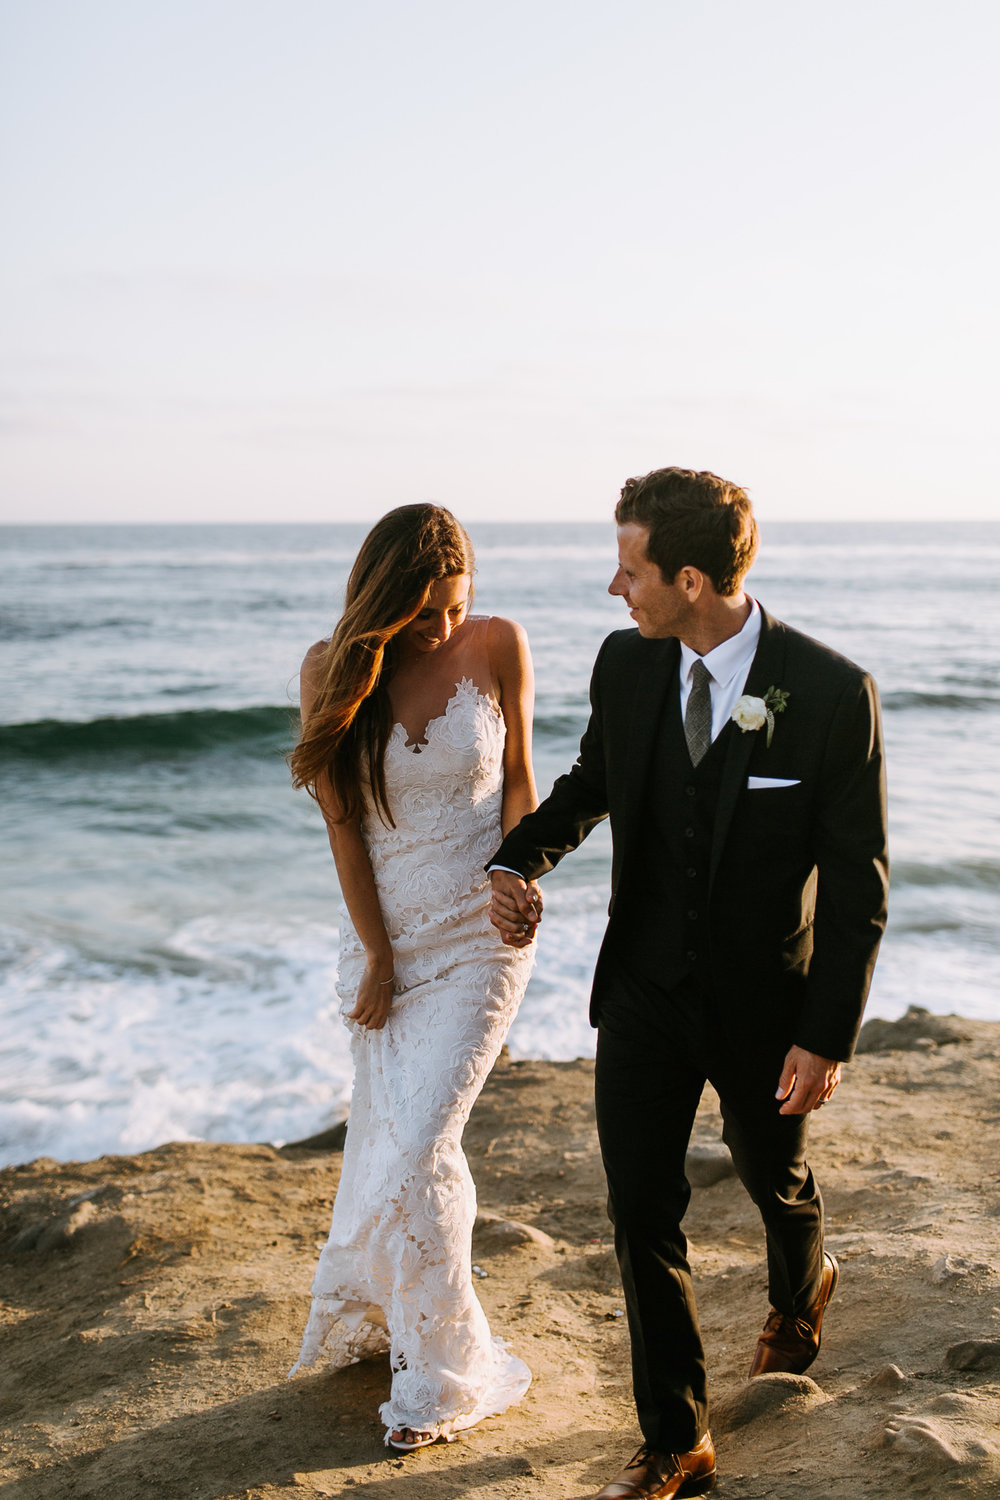 LagunaBeach-WeddingPhotographer-55.jpg